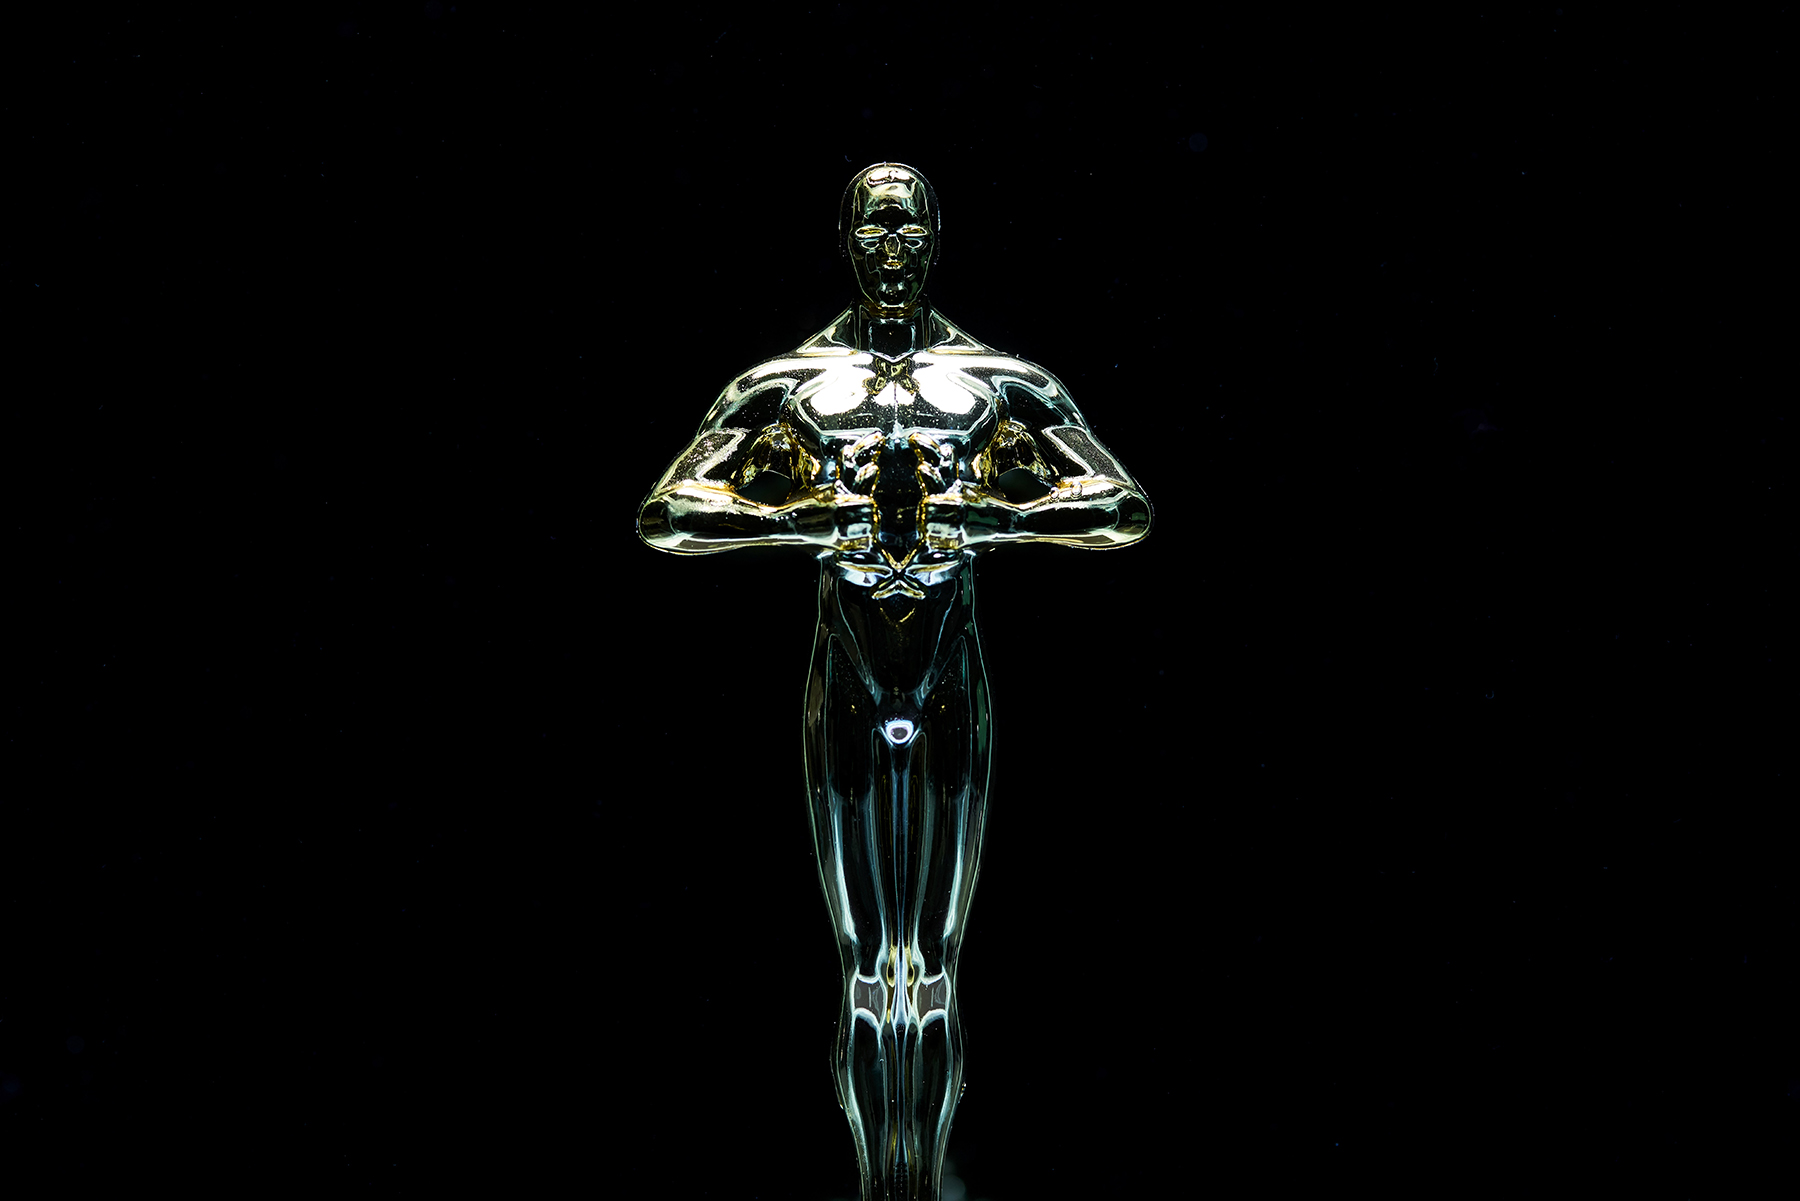 gold oscar like art-award-close-up-2098604.jpg